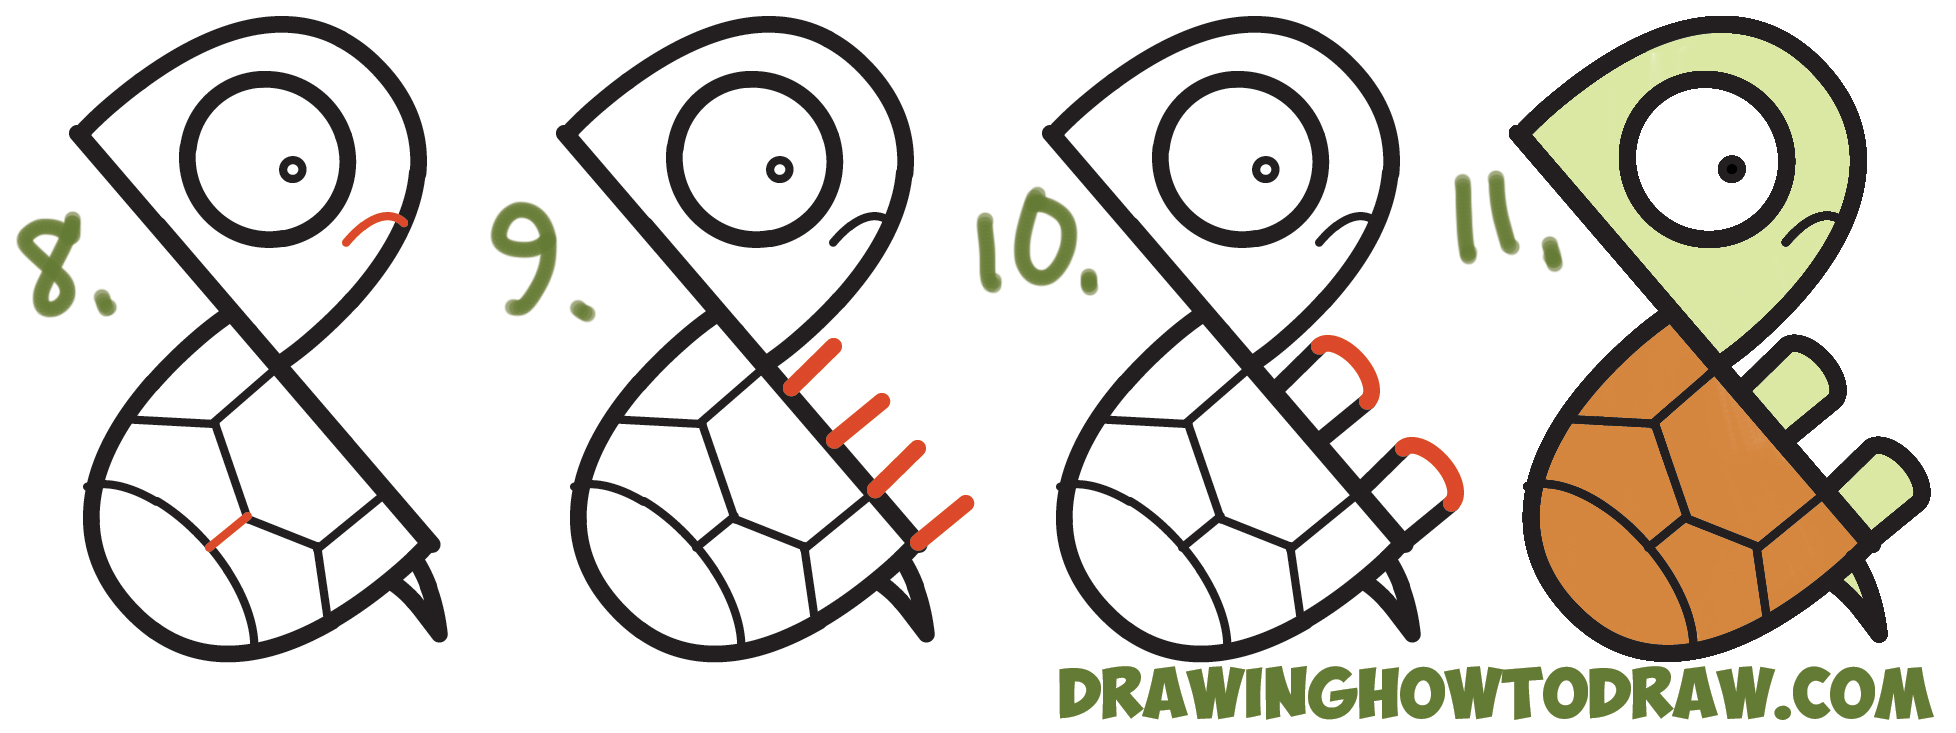 easy draw turtle - photo #31